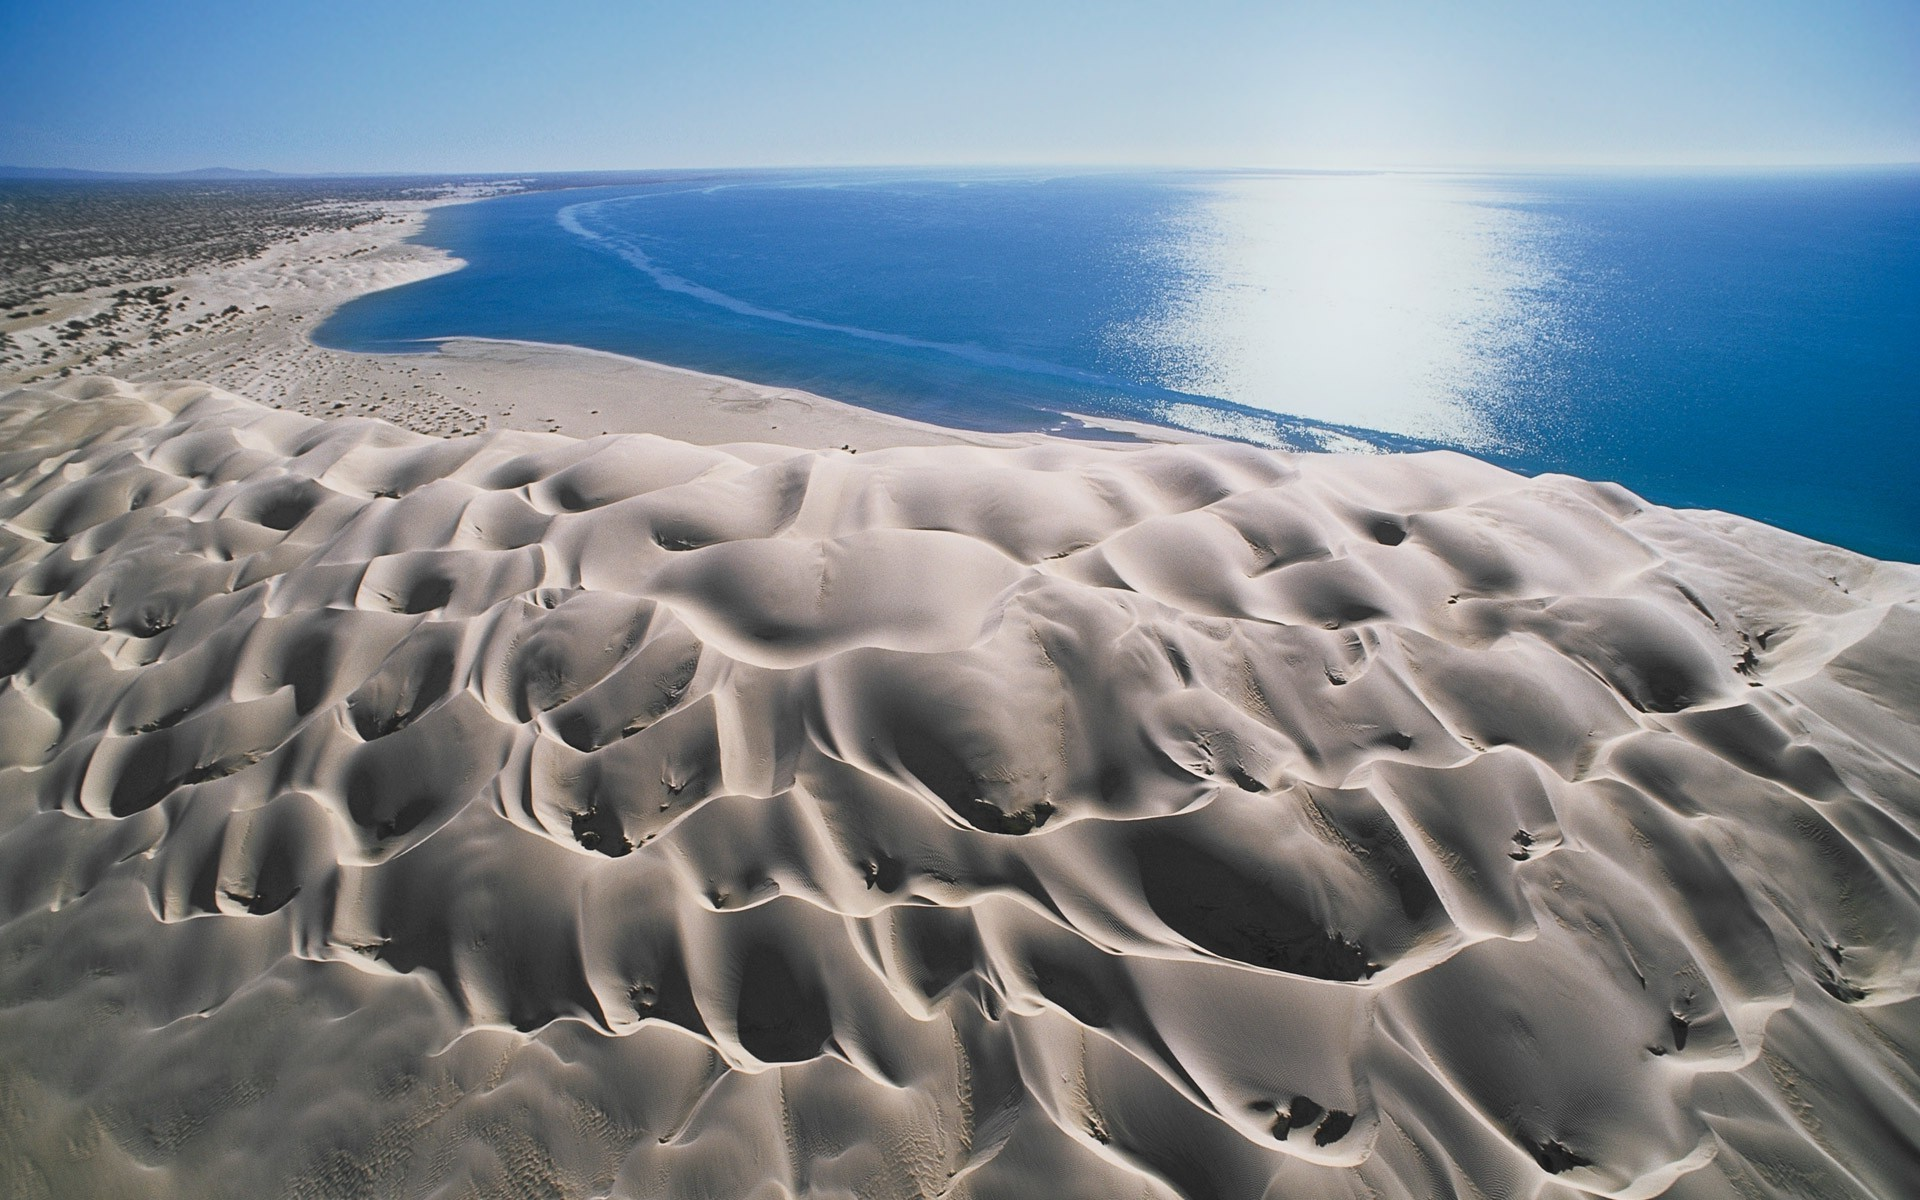 landscape, Beach, Nature, Dune, Sea, Sand, Baja California, Wind, Erosion,  Water, Blue, Mexico Wallpapers HD / Desktop and Mobile Backgrounds